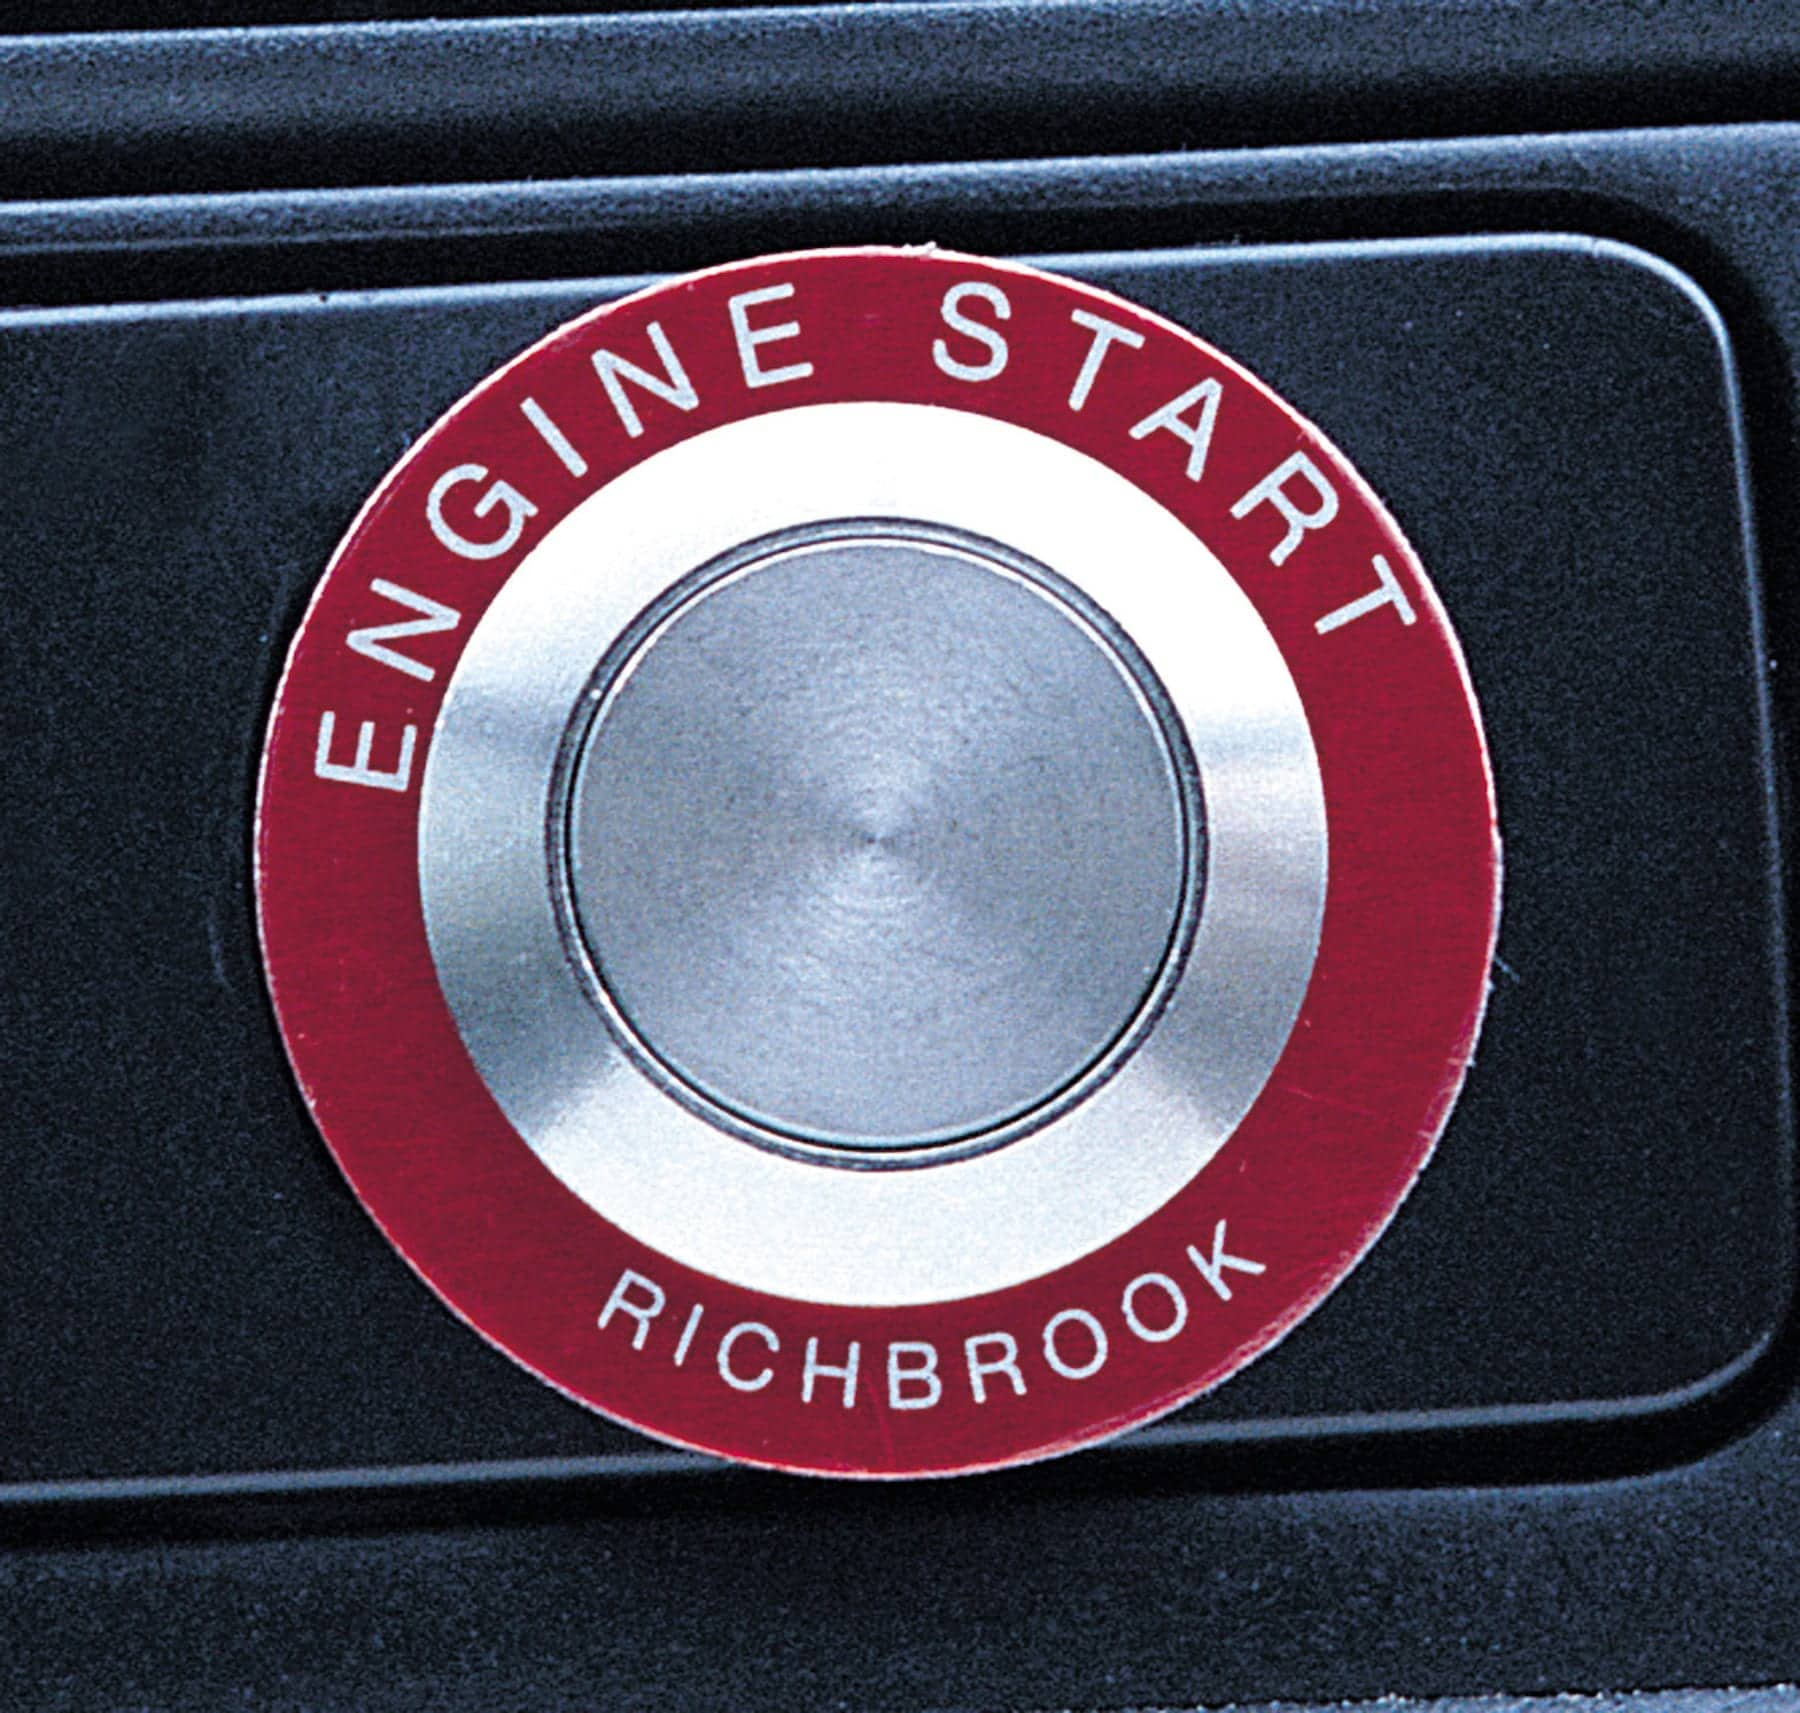 Engine Ignition Start Button Pro-Start Push Button Ignition Start - inc. fitting kit